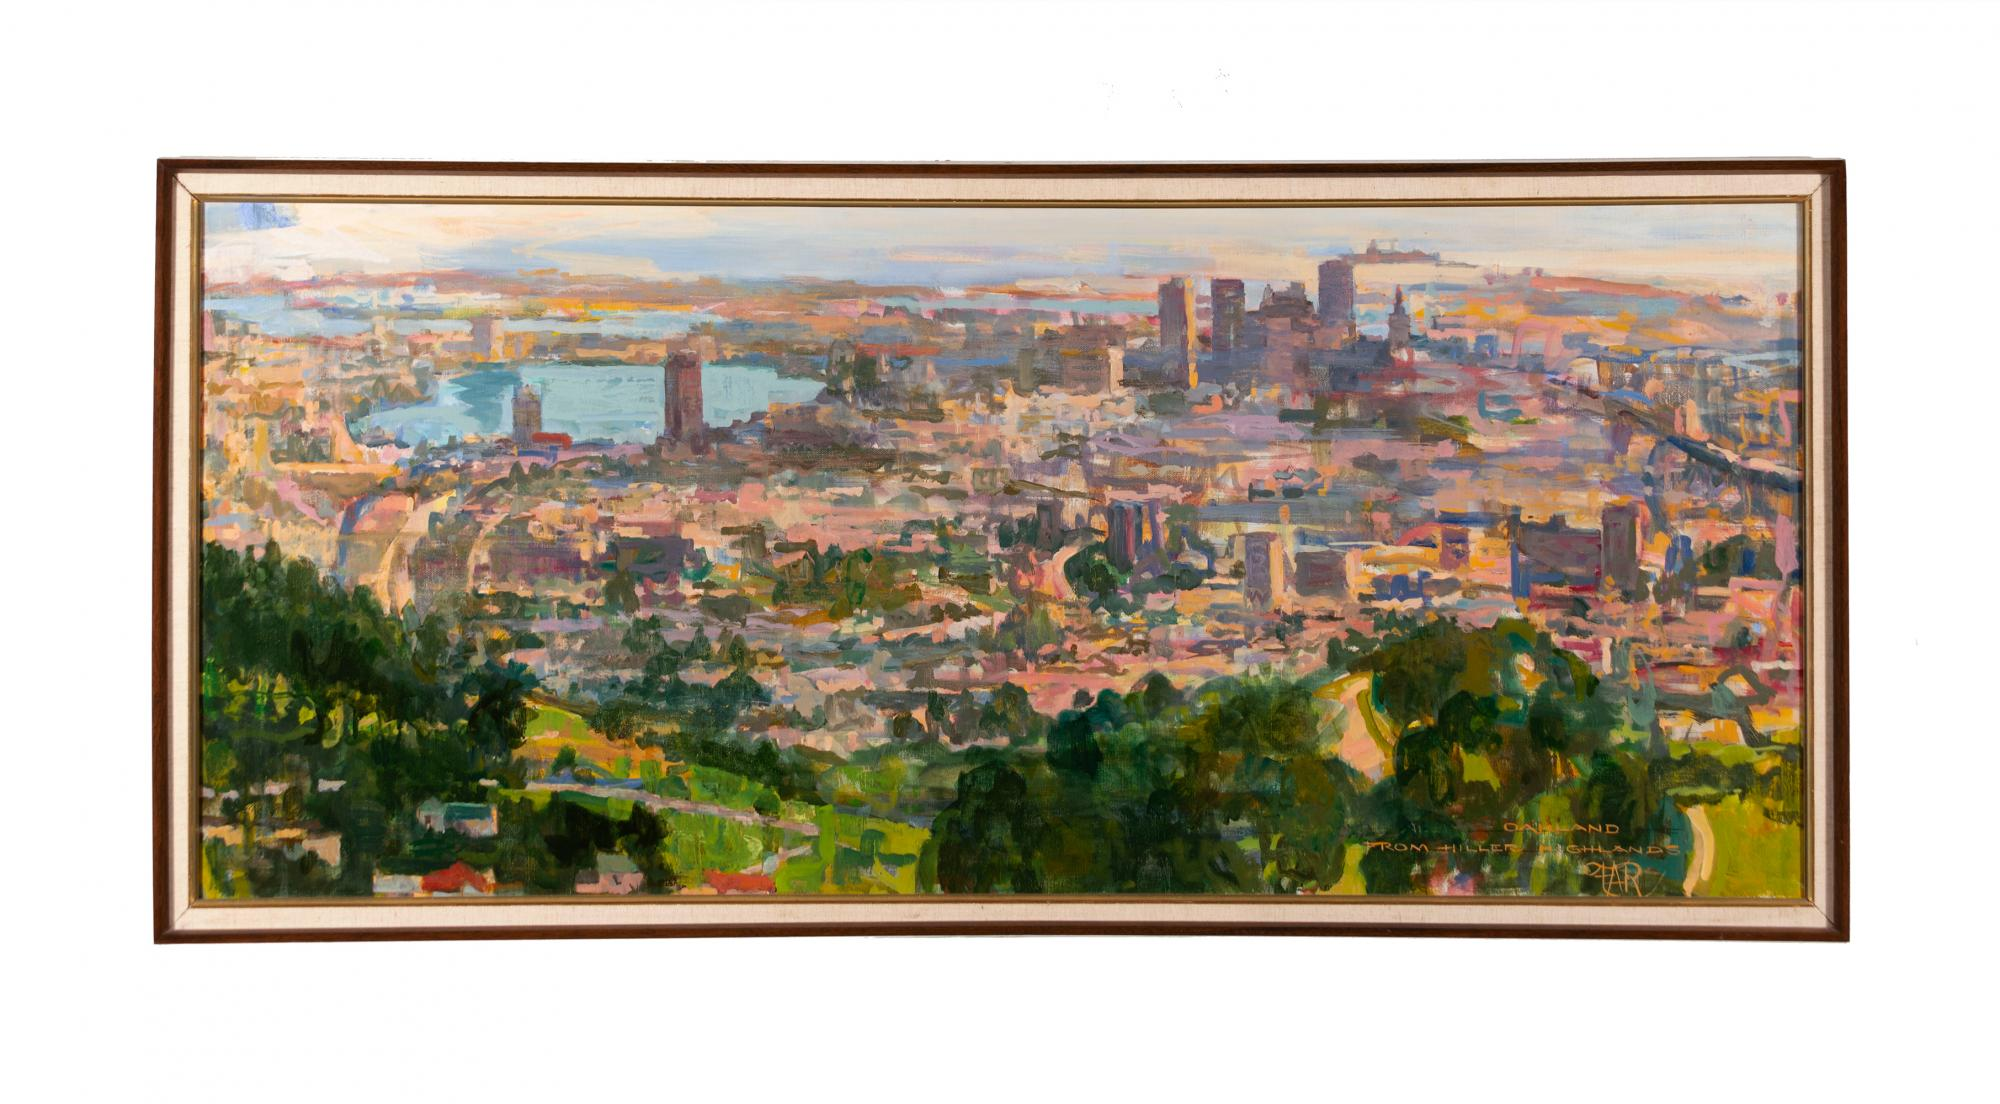 Frank Rowe (1921–1985) United States, Smog Alert –Oakland c. 1978–80, Oil on canvas, Gift of the Frank A. Rowe Family Trust [2012.16]